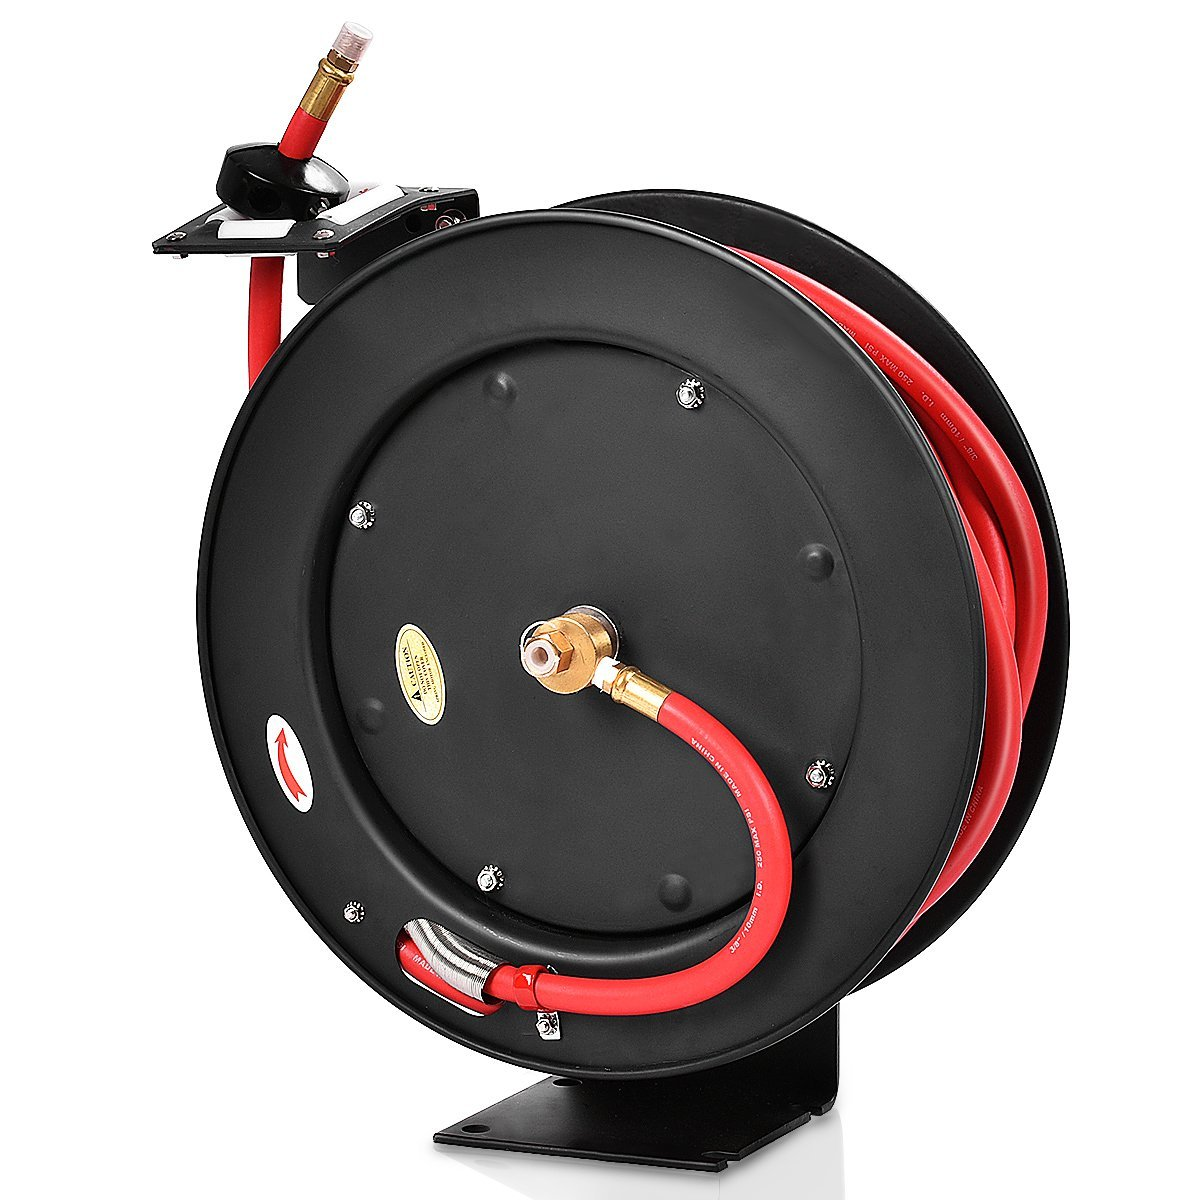 Goplus Auto Rewind Retractable Air Hose Reel, Hose Compressor with 3/8'' x 50' Hose, Max.300 PSI